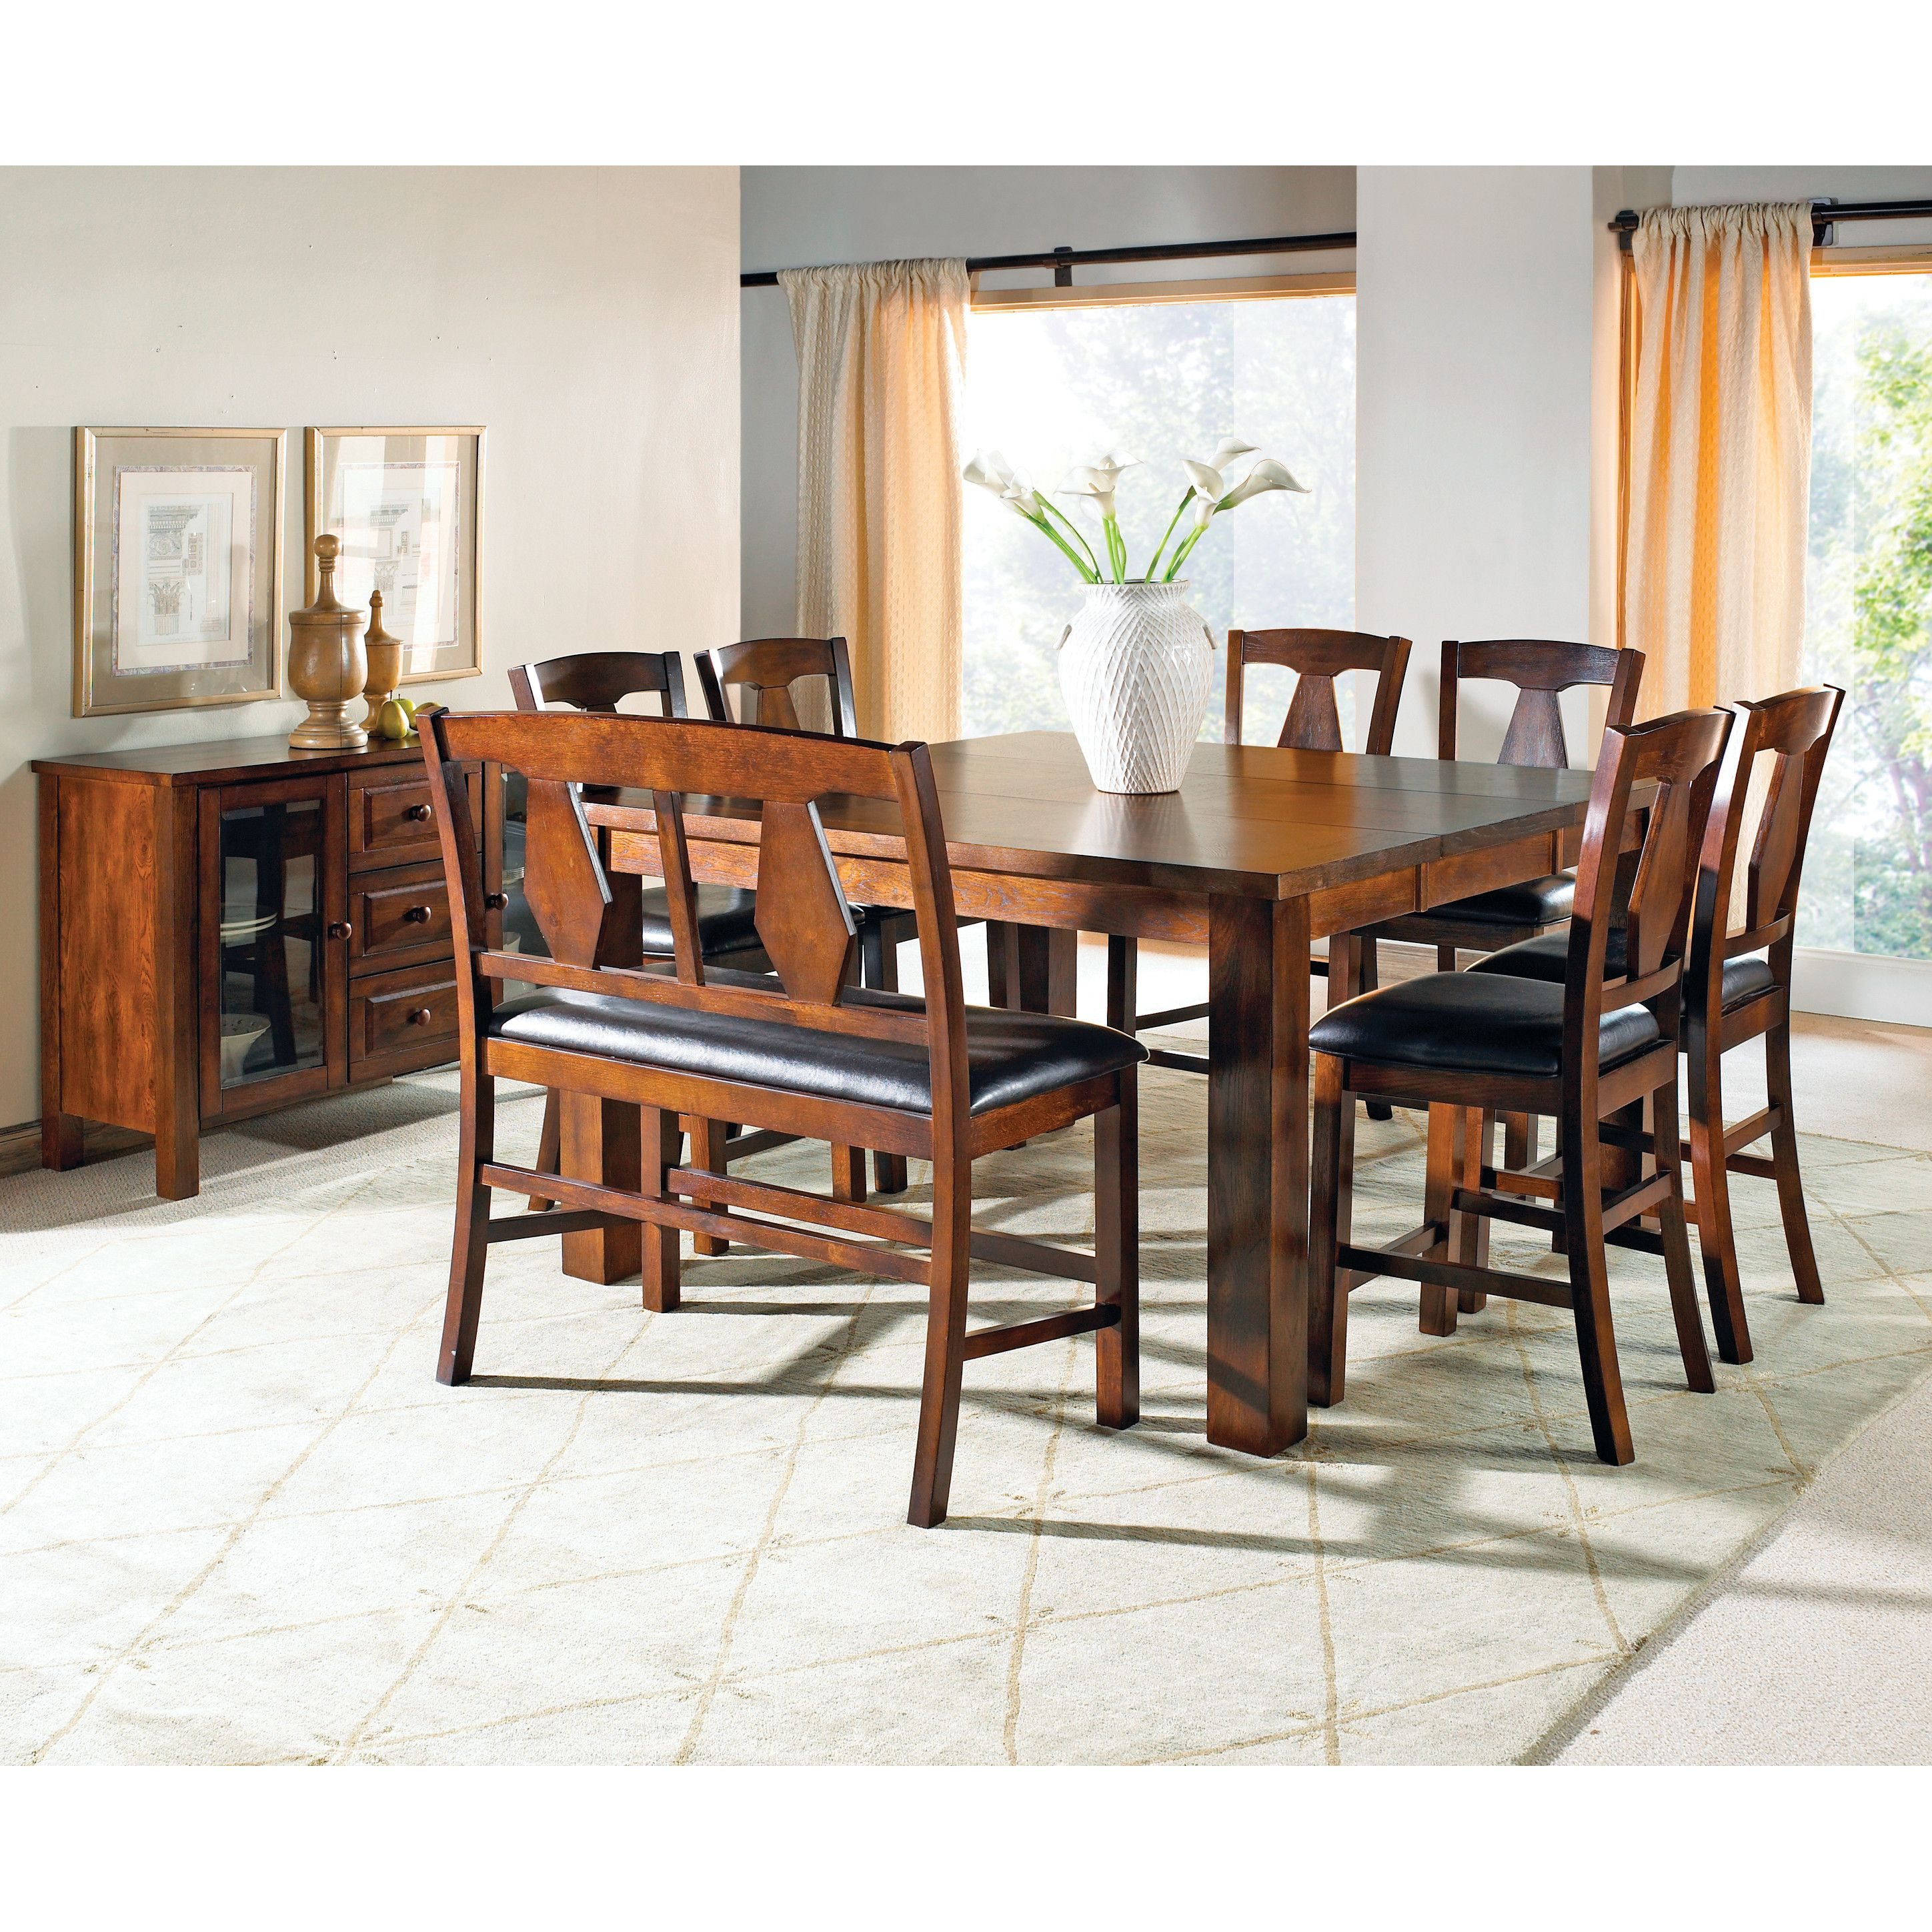 Three Posts Plainville 8 Piece Dining Set & Reviews  Wayfair Fascinating 8 Piece Dining Room Set Inspiration